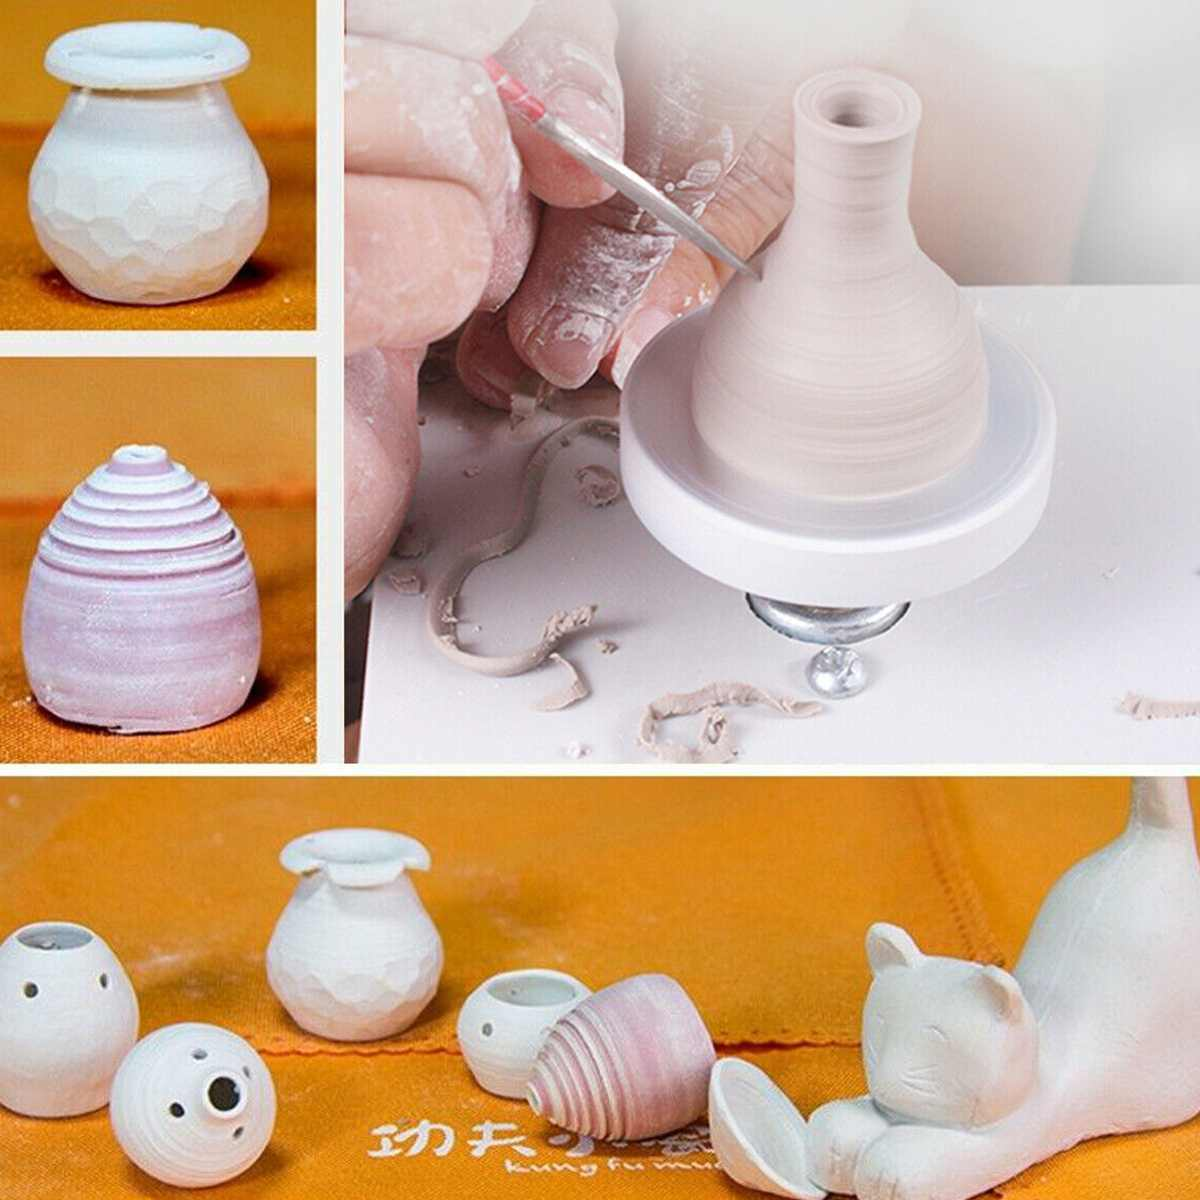 USB Ceramic Machine 5V Mini Pottery Wheel Electric For Clay Art Work Crafts DIY Manual Control Speed Stepless Carried Smooth